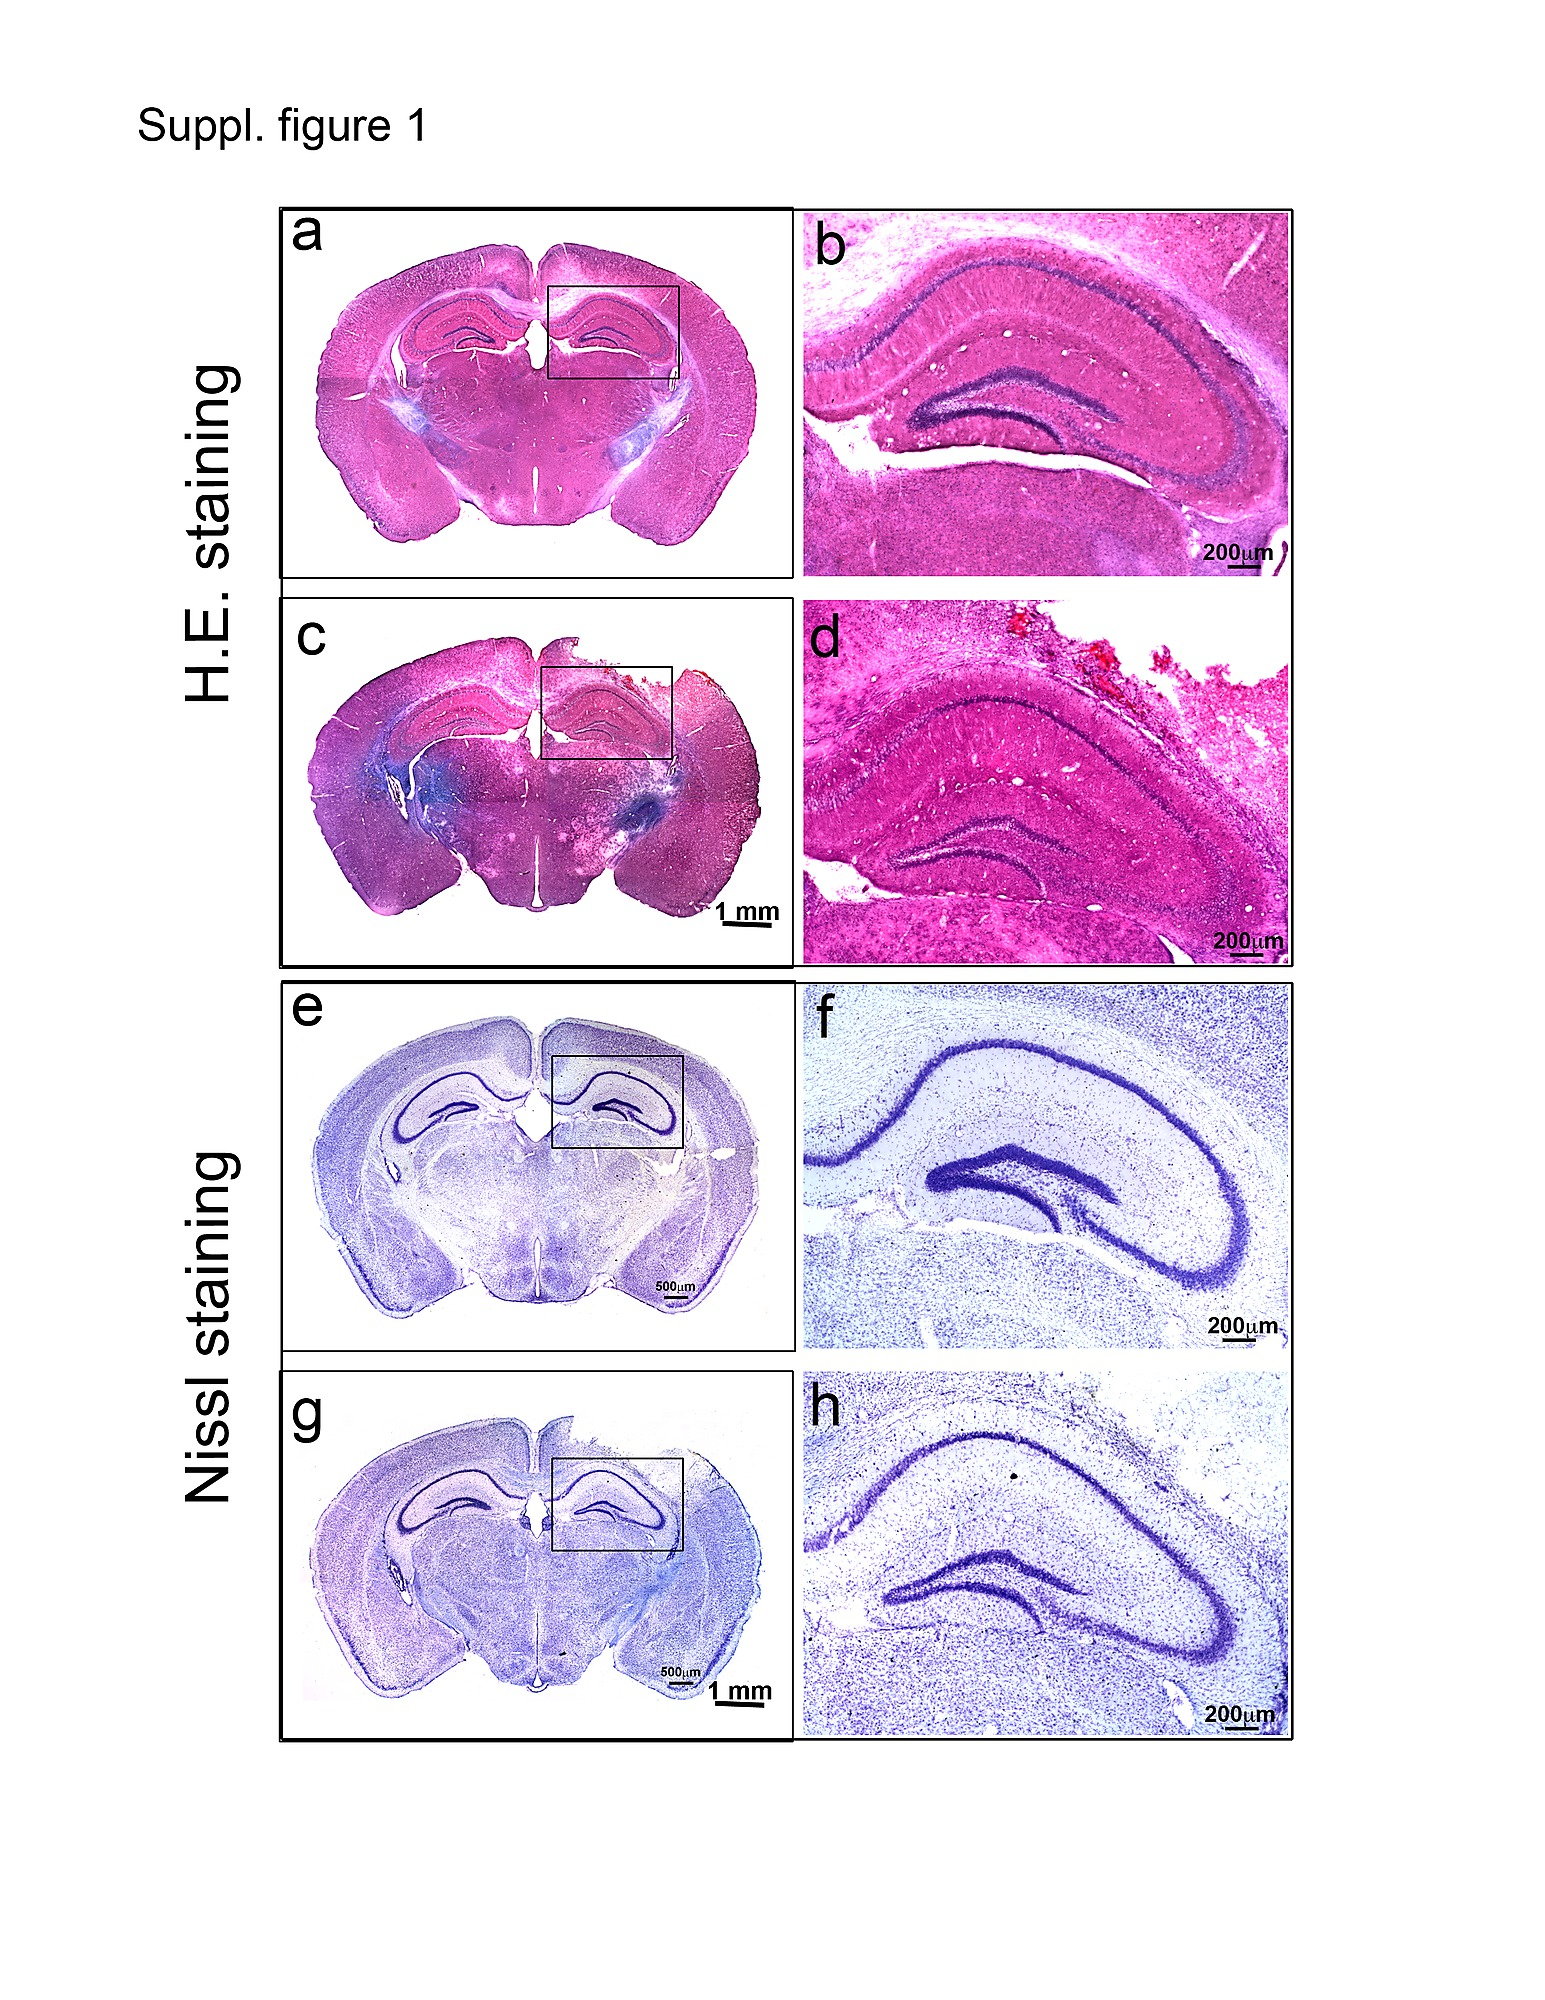 Moderate Traumatic Brain Injury Causes Acute Dendritic And Synaptic